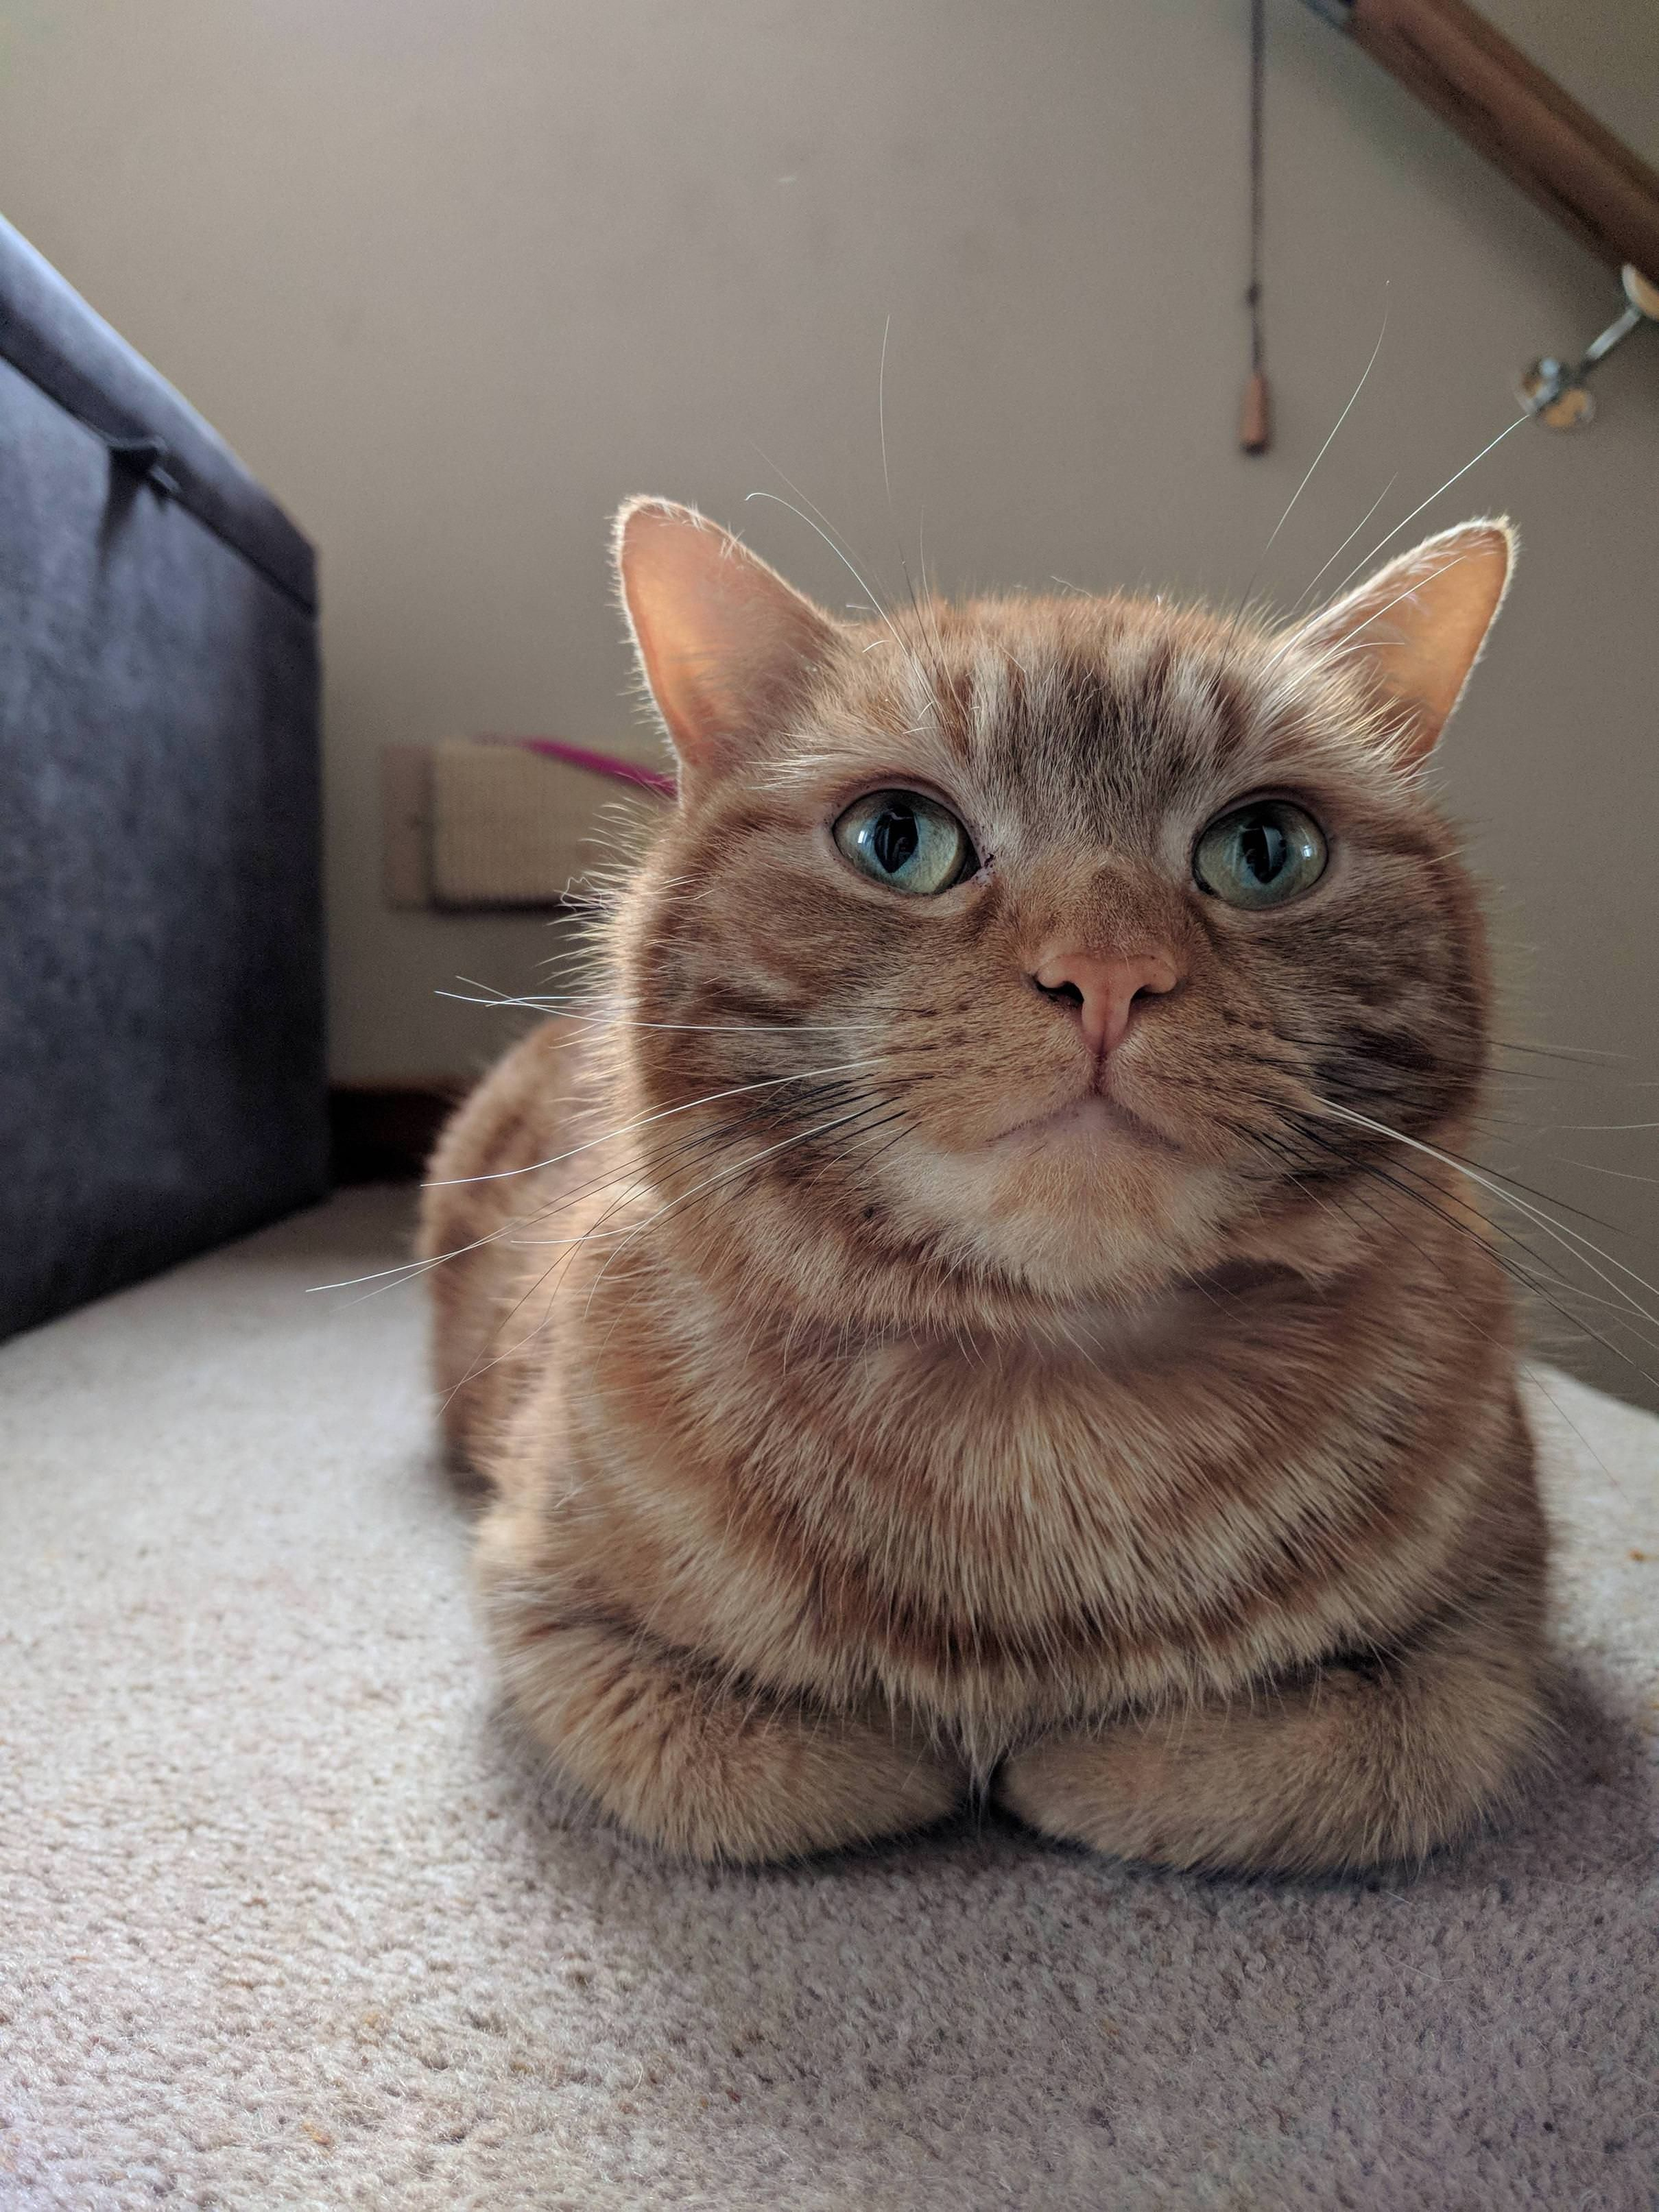 Loafin Around Imgur Com Submitted By Goldenchocoboracer To R Catloaf 0 Comments Original View This Image At Imgur Com Fu With Images Kittens Cutest Funny Cats Cats